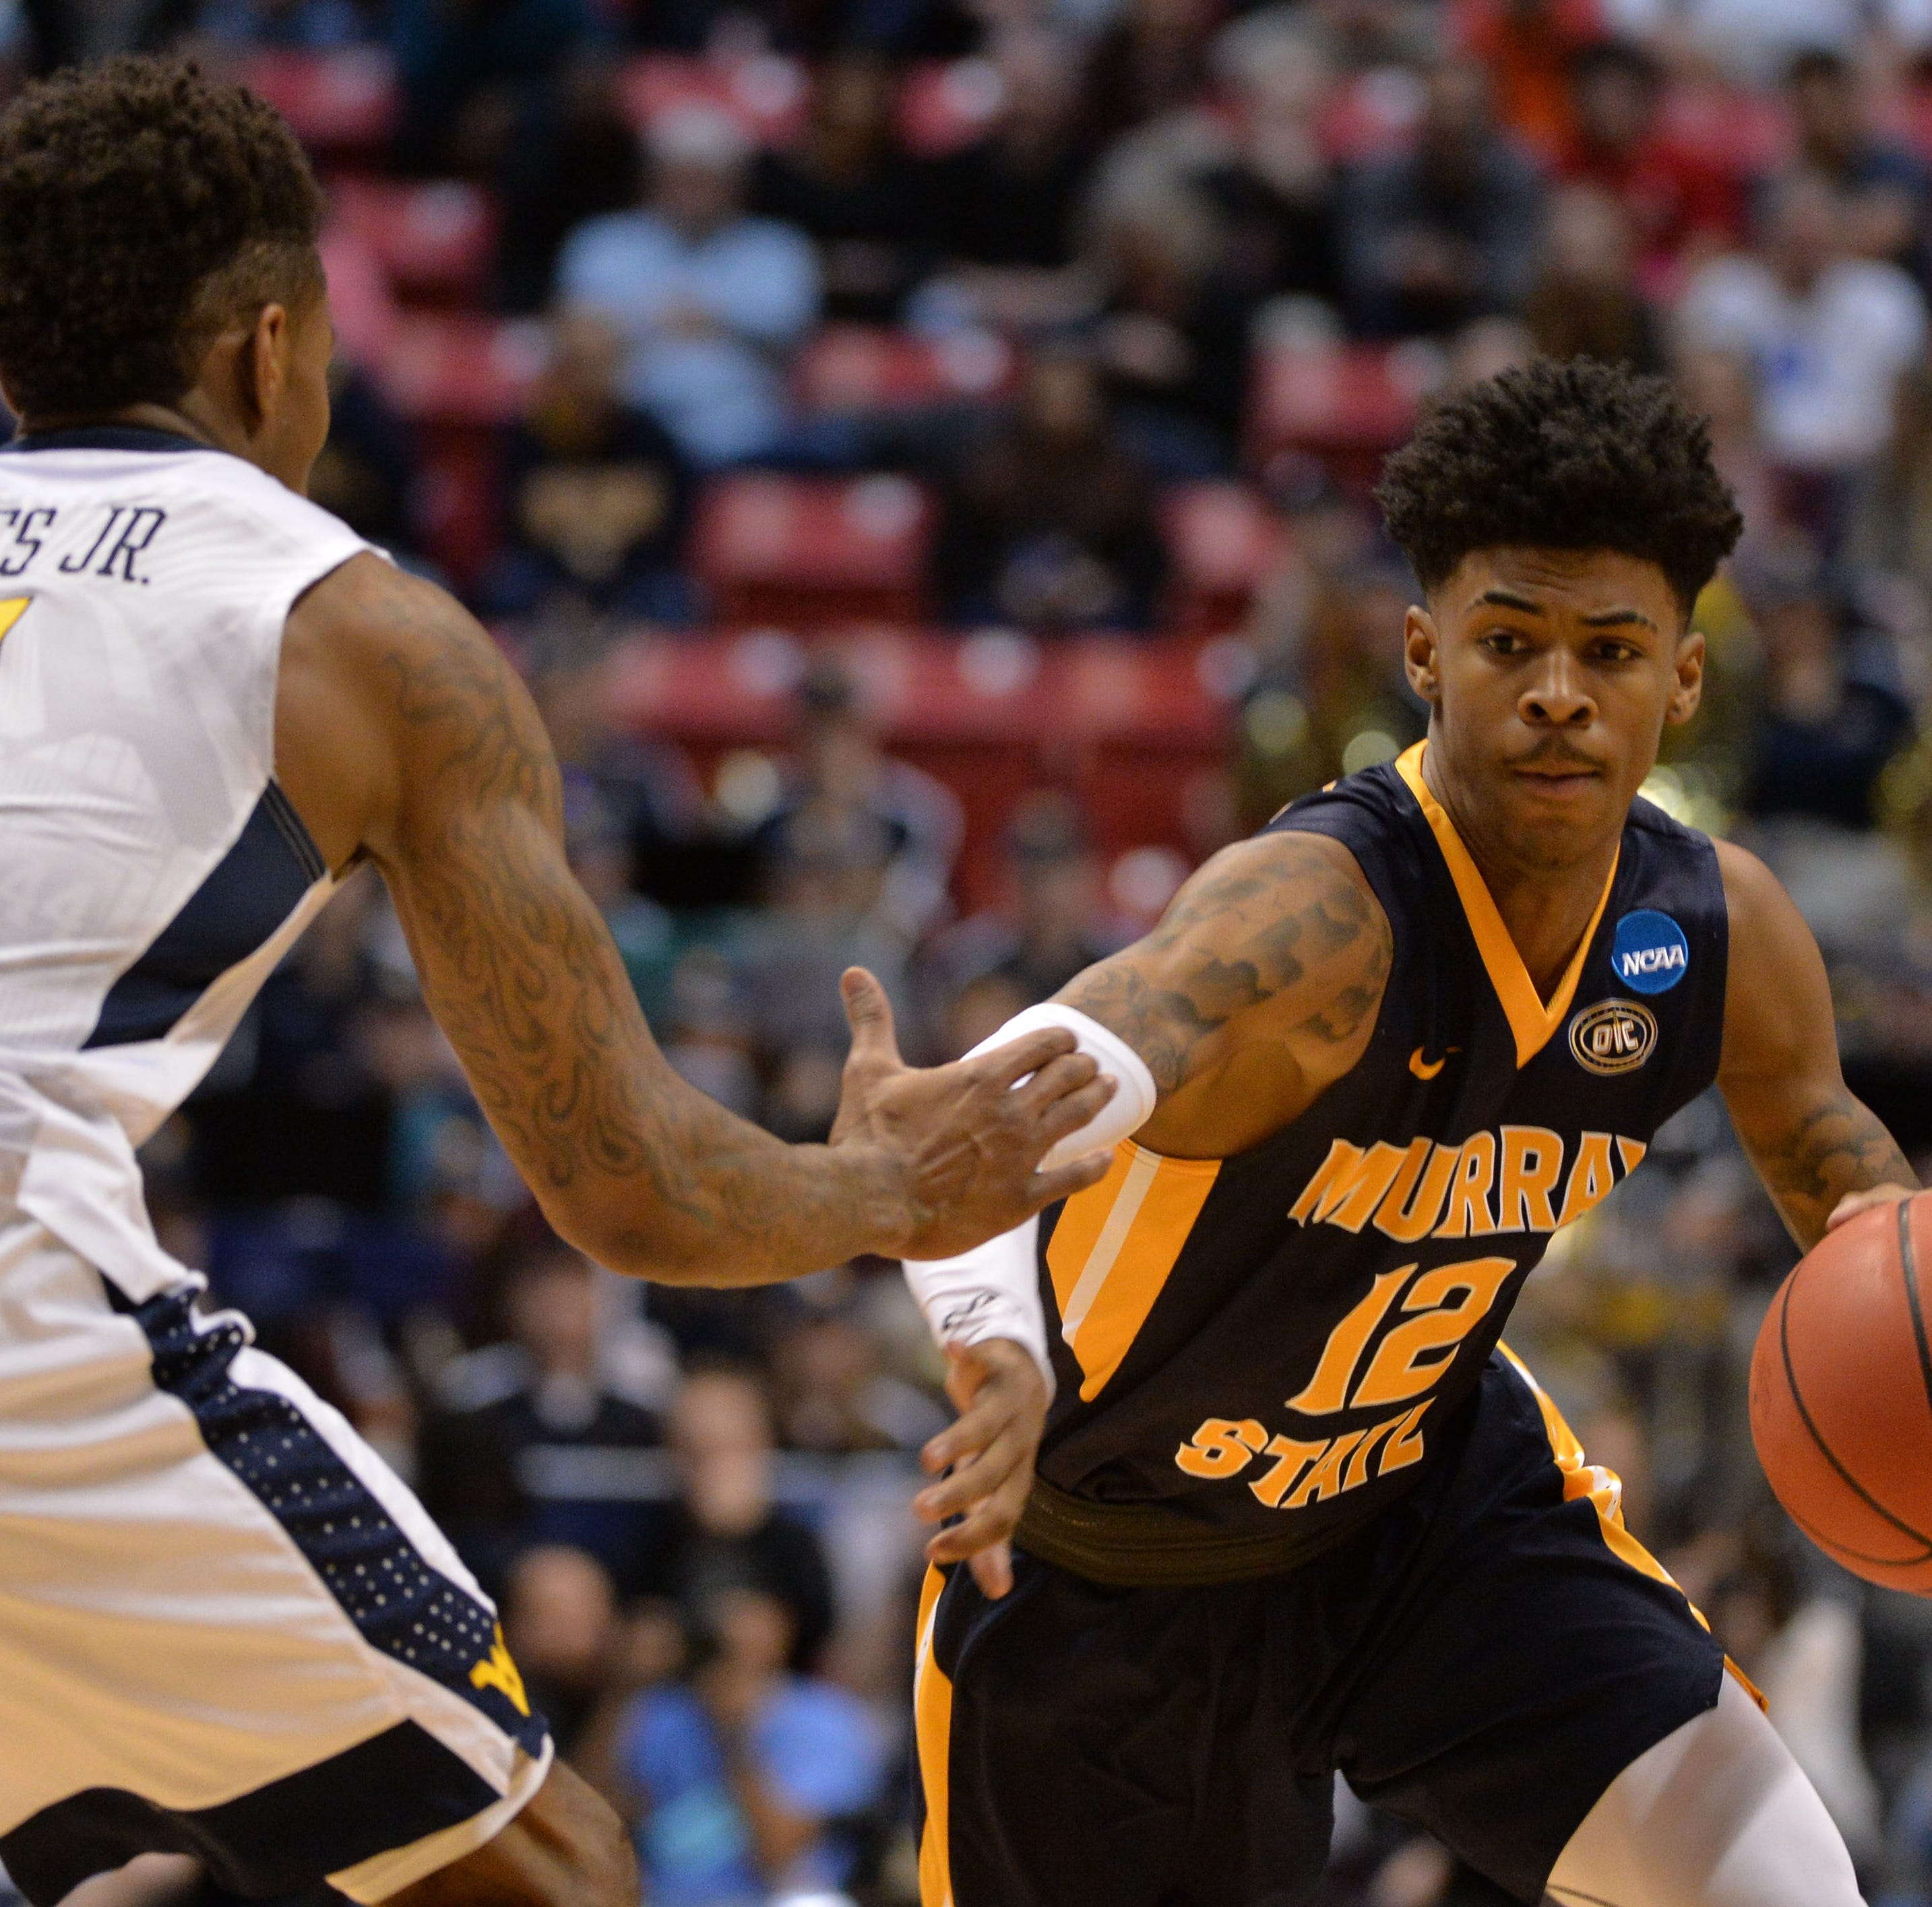 Next task for the Aces? Figuring out how to defend future NBA lottery pick Ja Morant of Murray State